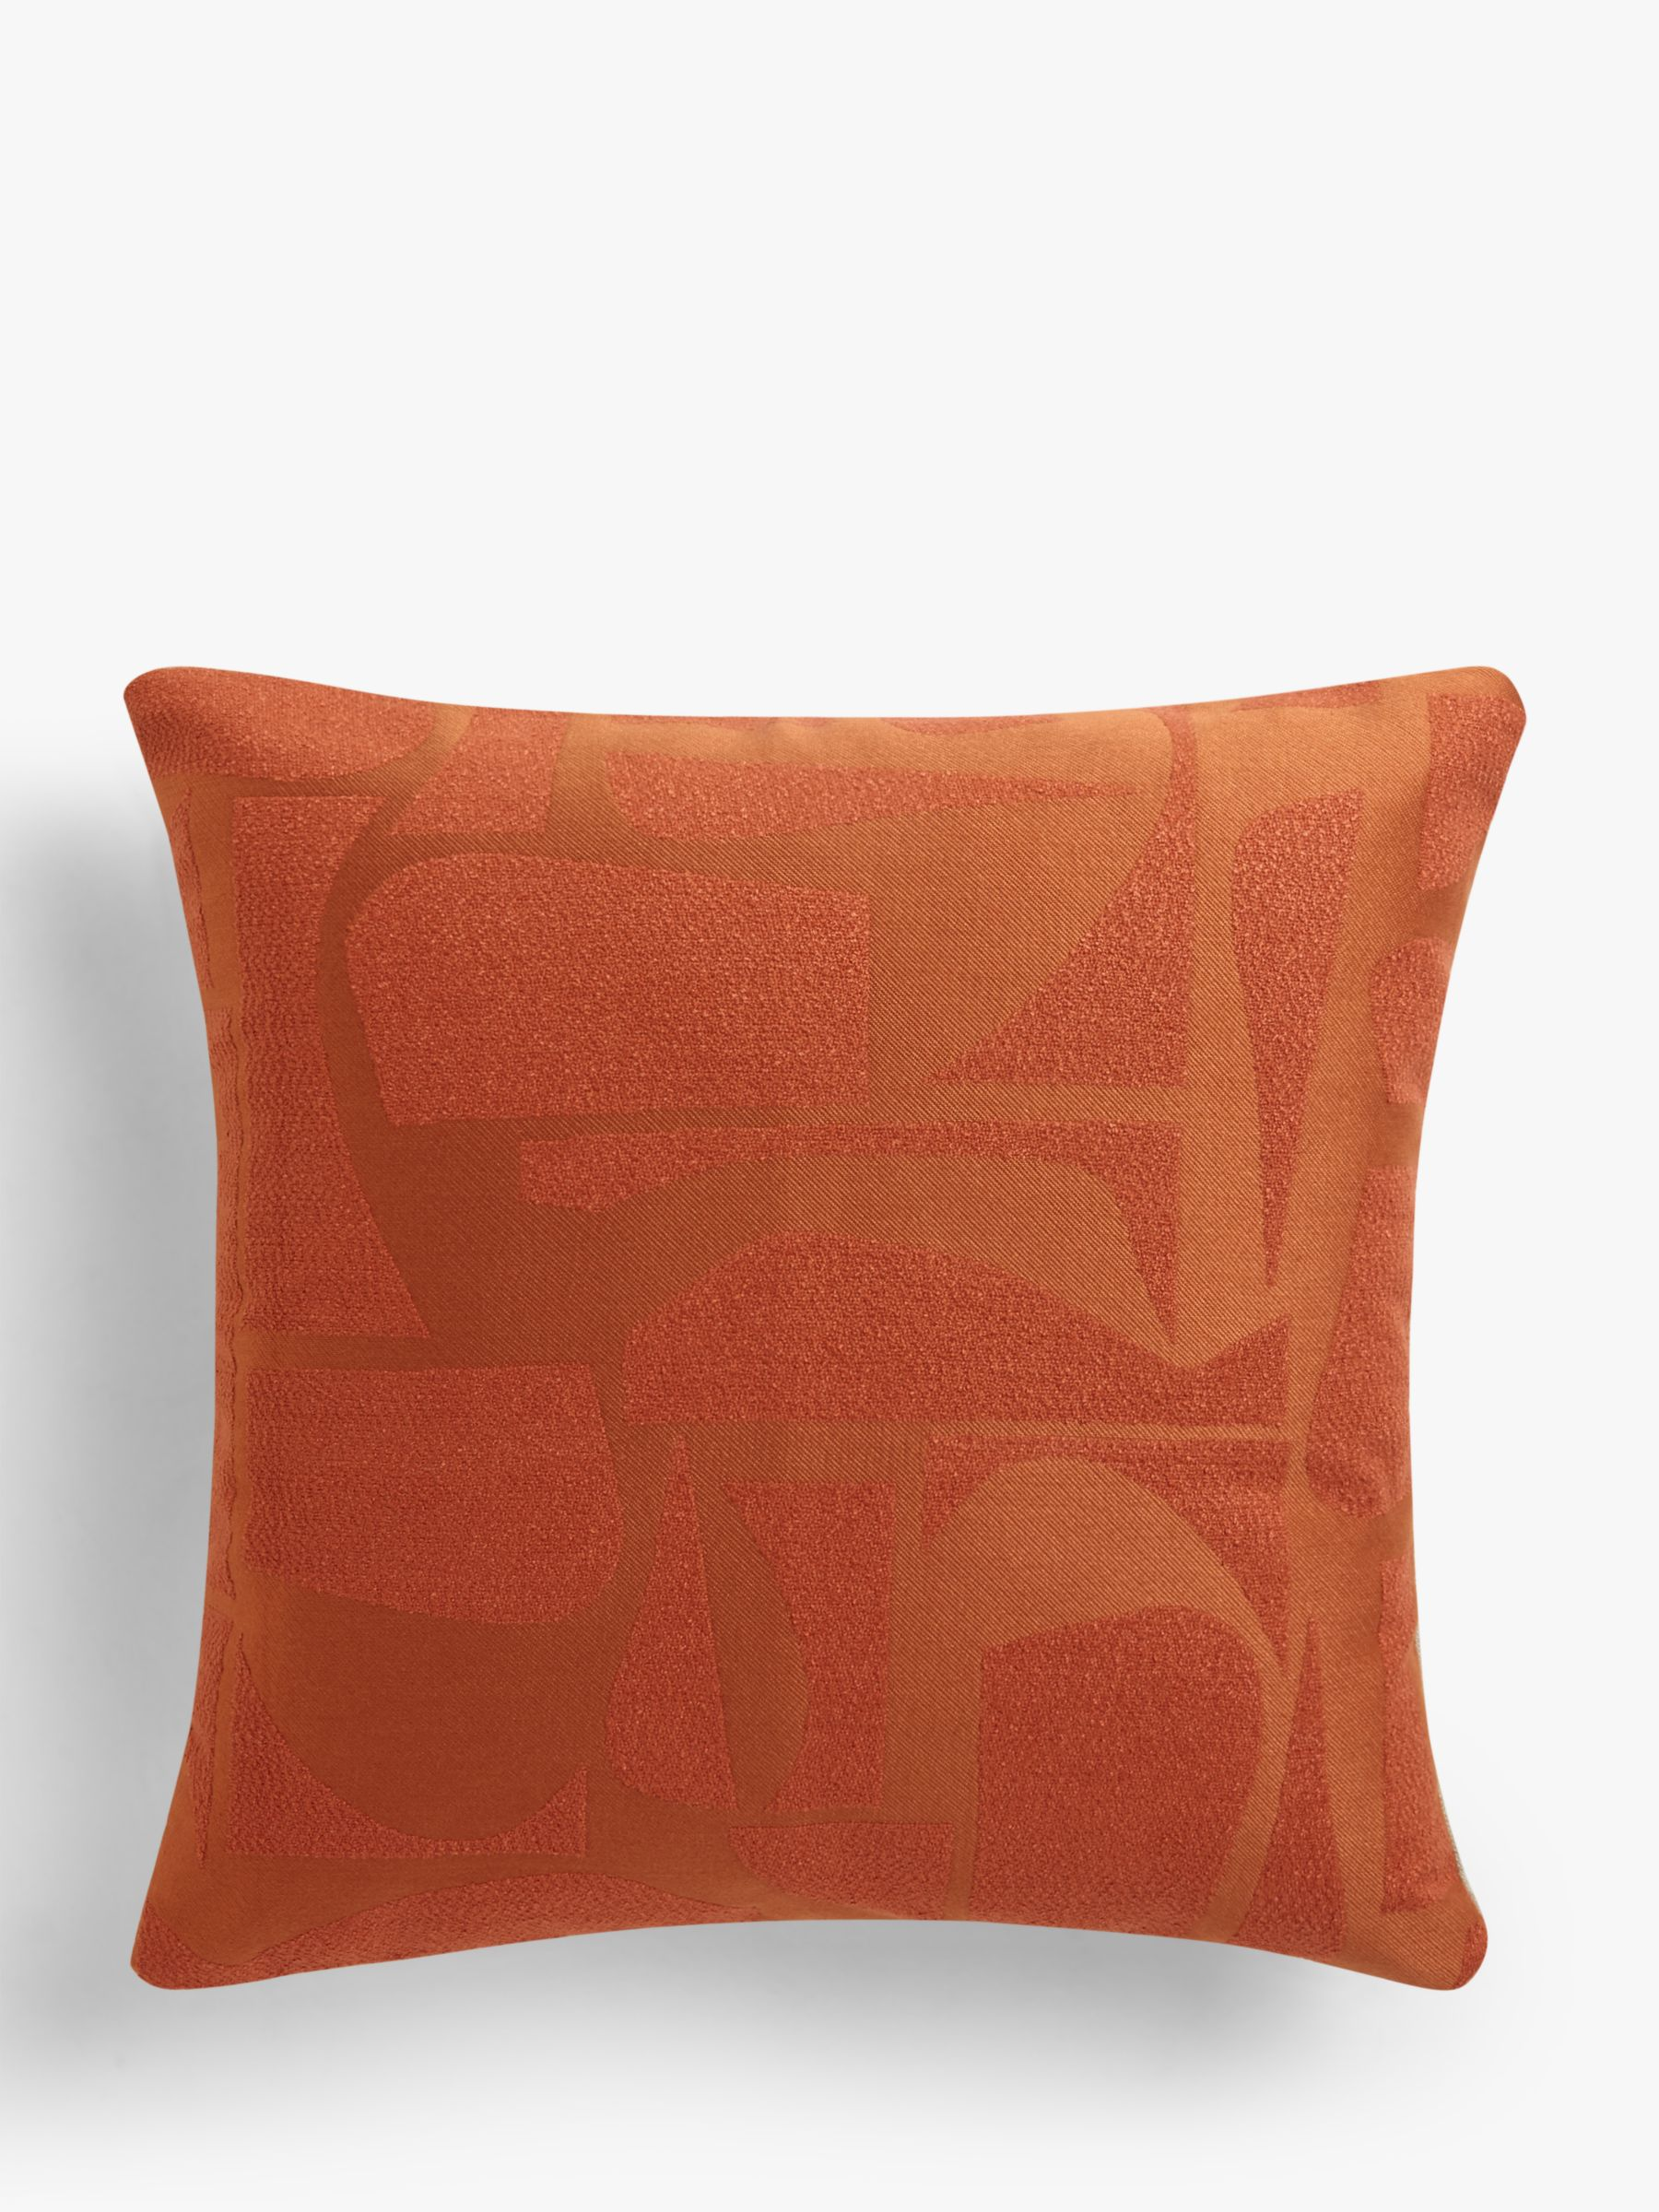 Buy Design Project by John Lewis No.197 Cushion, Burnt Orange Online at johnlewis.com